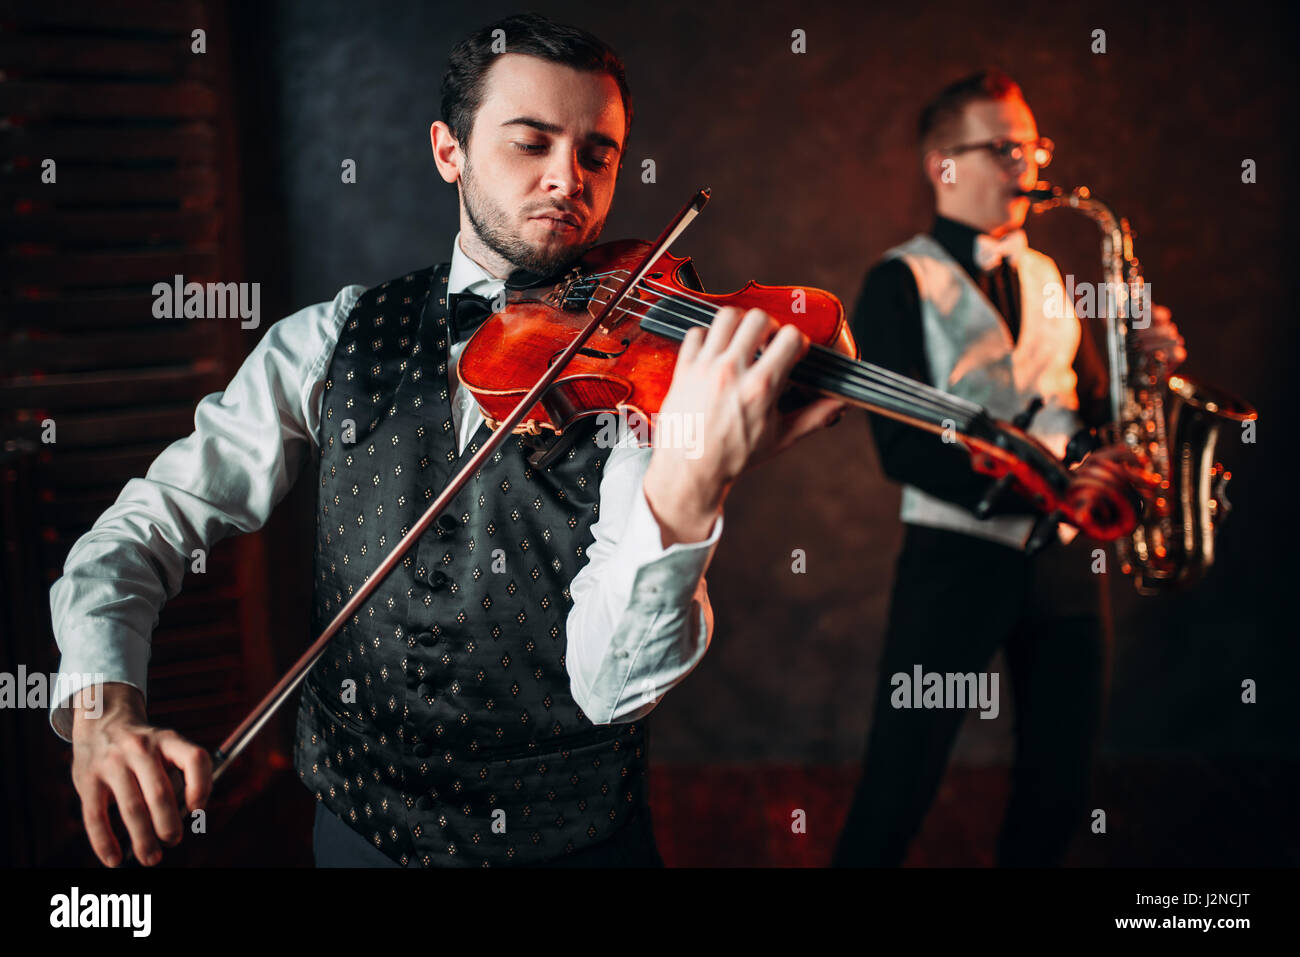 Jazz man and violinst, classical musical duet. Sax and fiddle music players - Stock Image